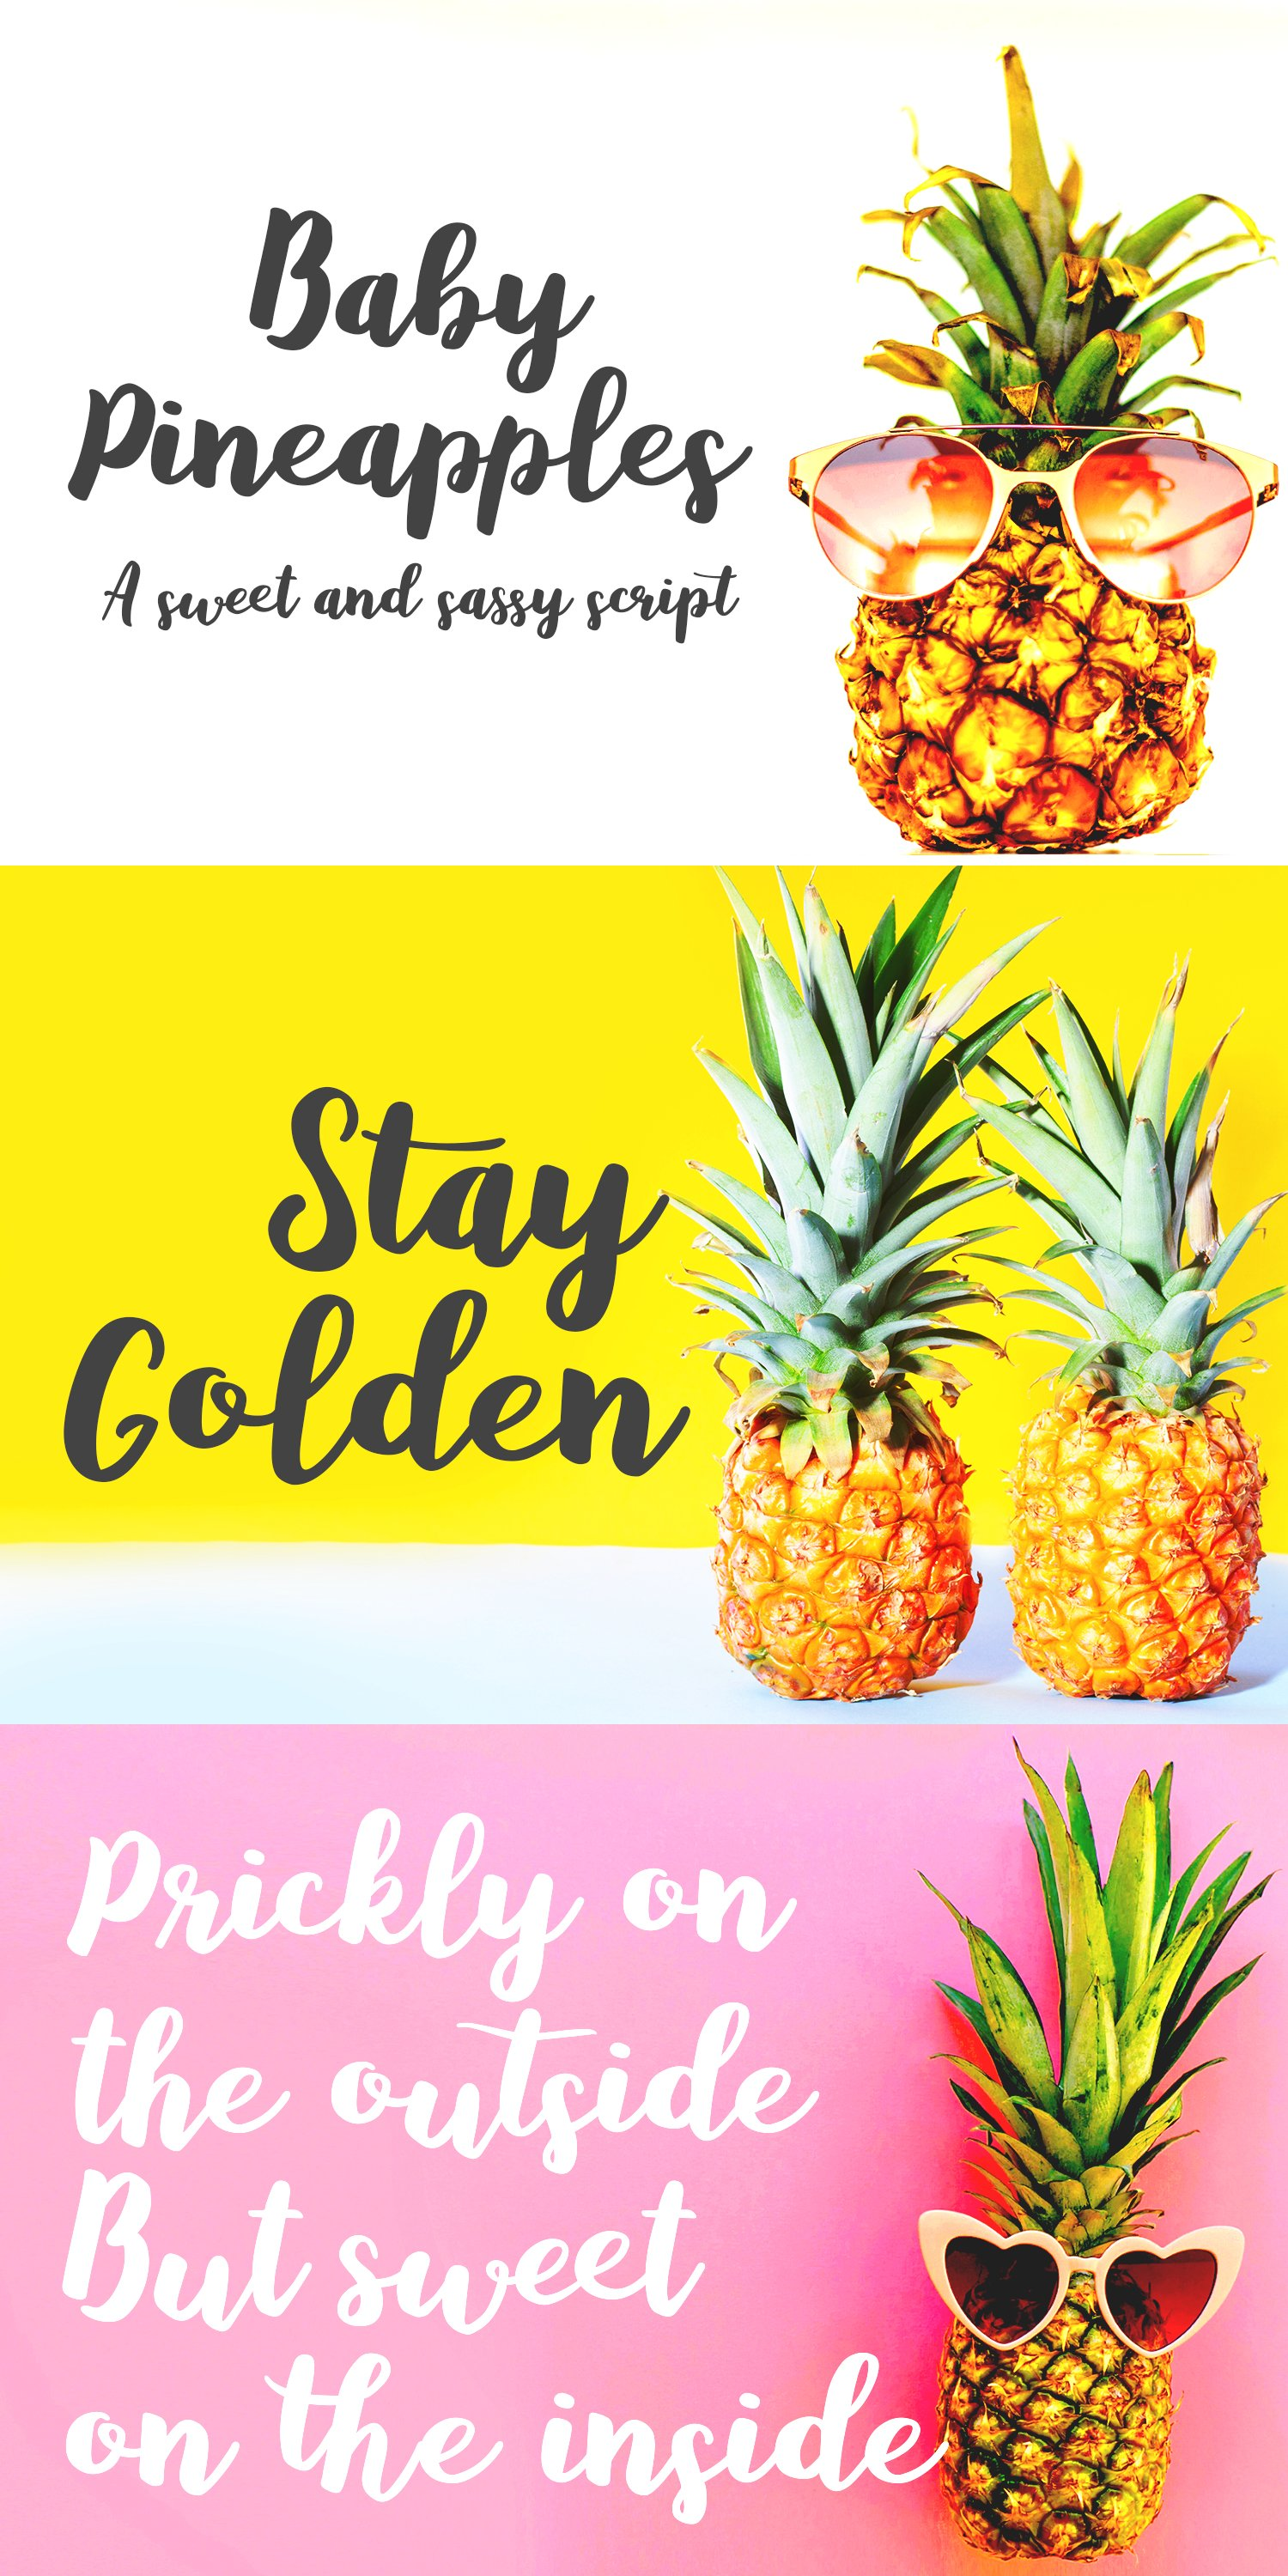 Baby Pineapples - A Sweet and Sassy Script font example image 16